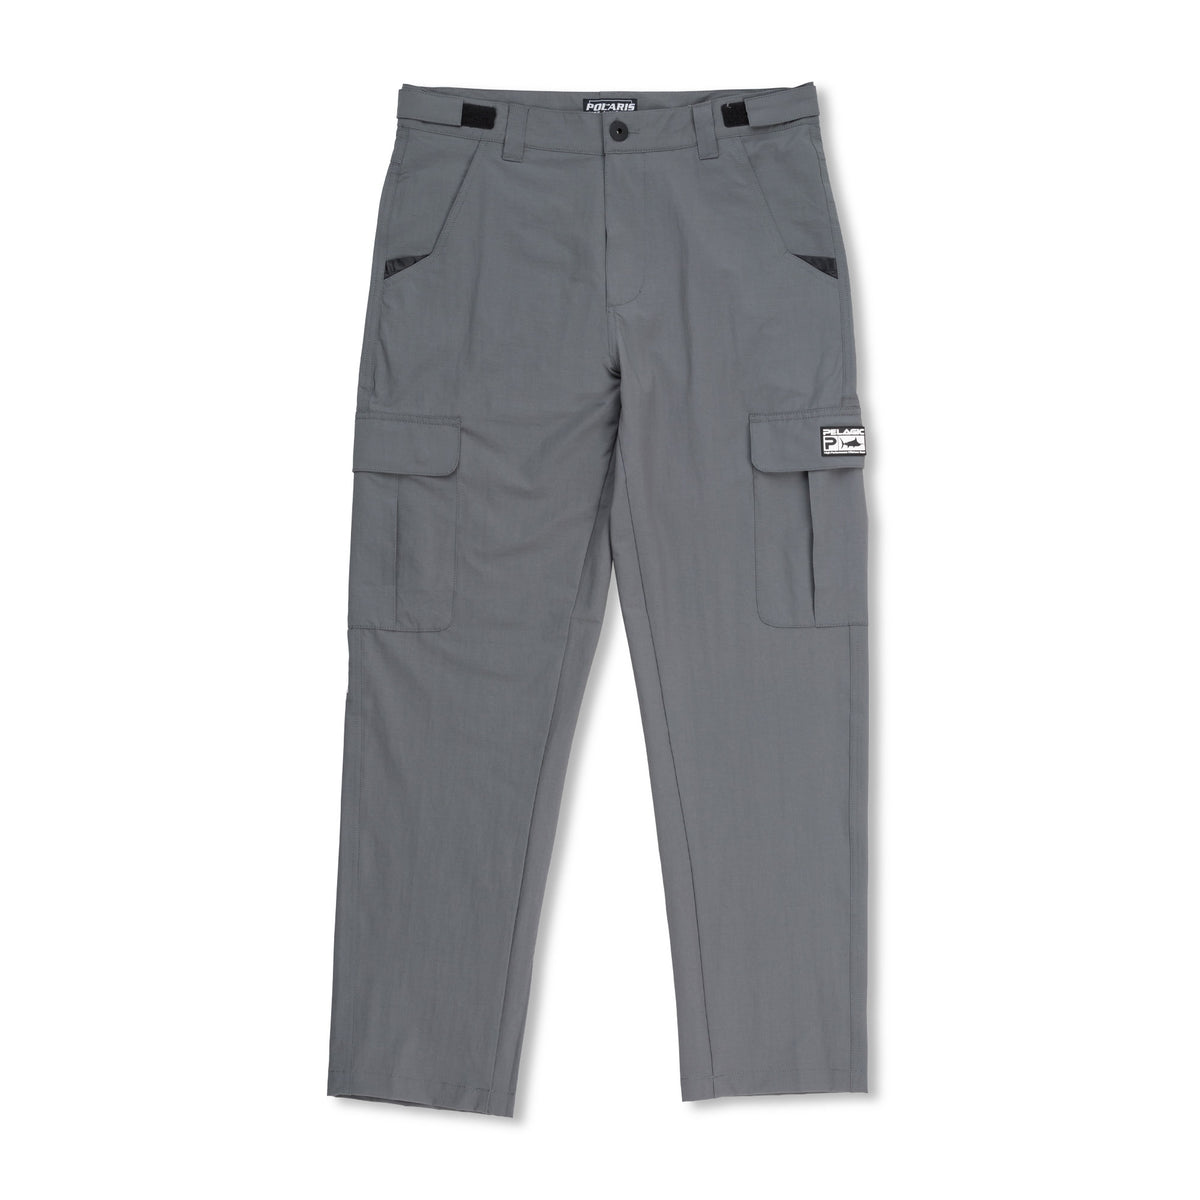 Polaris Fishing Pant Big Image - 1